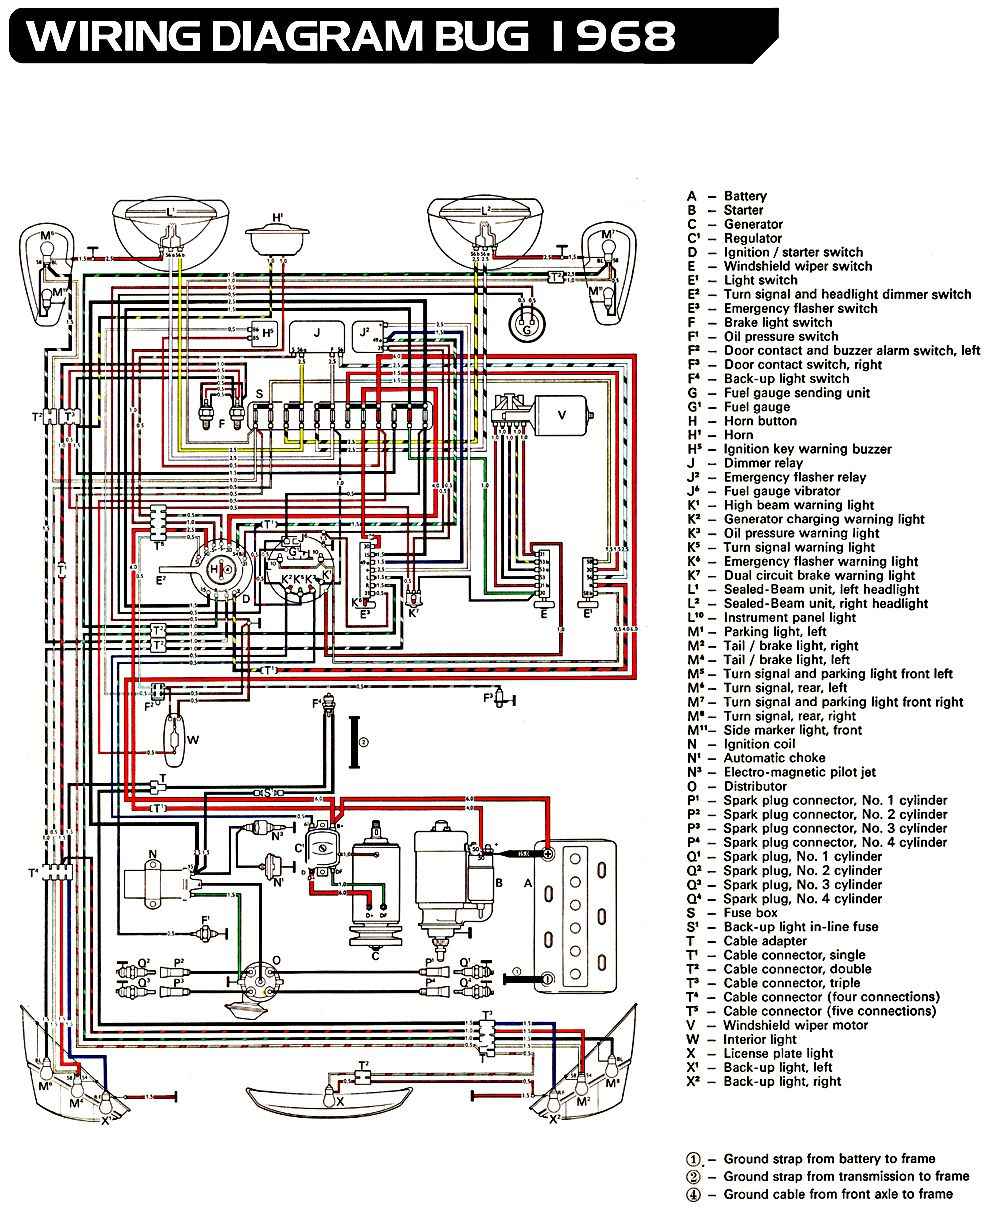 3a1908112d3826270ed5e3be362292bf vw bug ignition wiring diagram 73 vw wiring diagram free vw type 3 wiring harness at cos-gaming.co